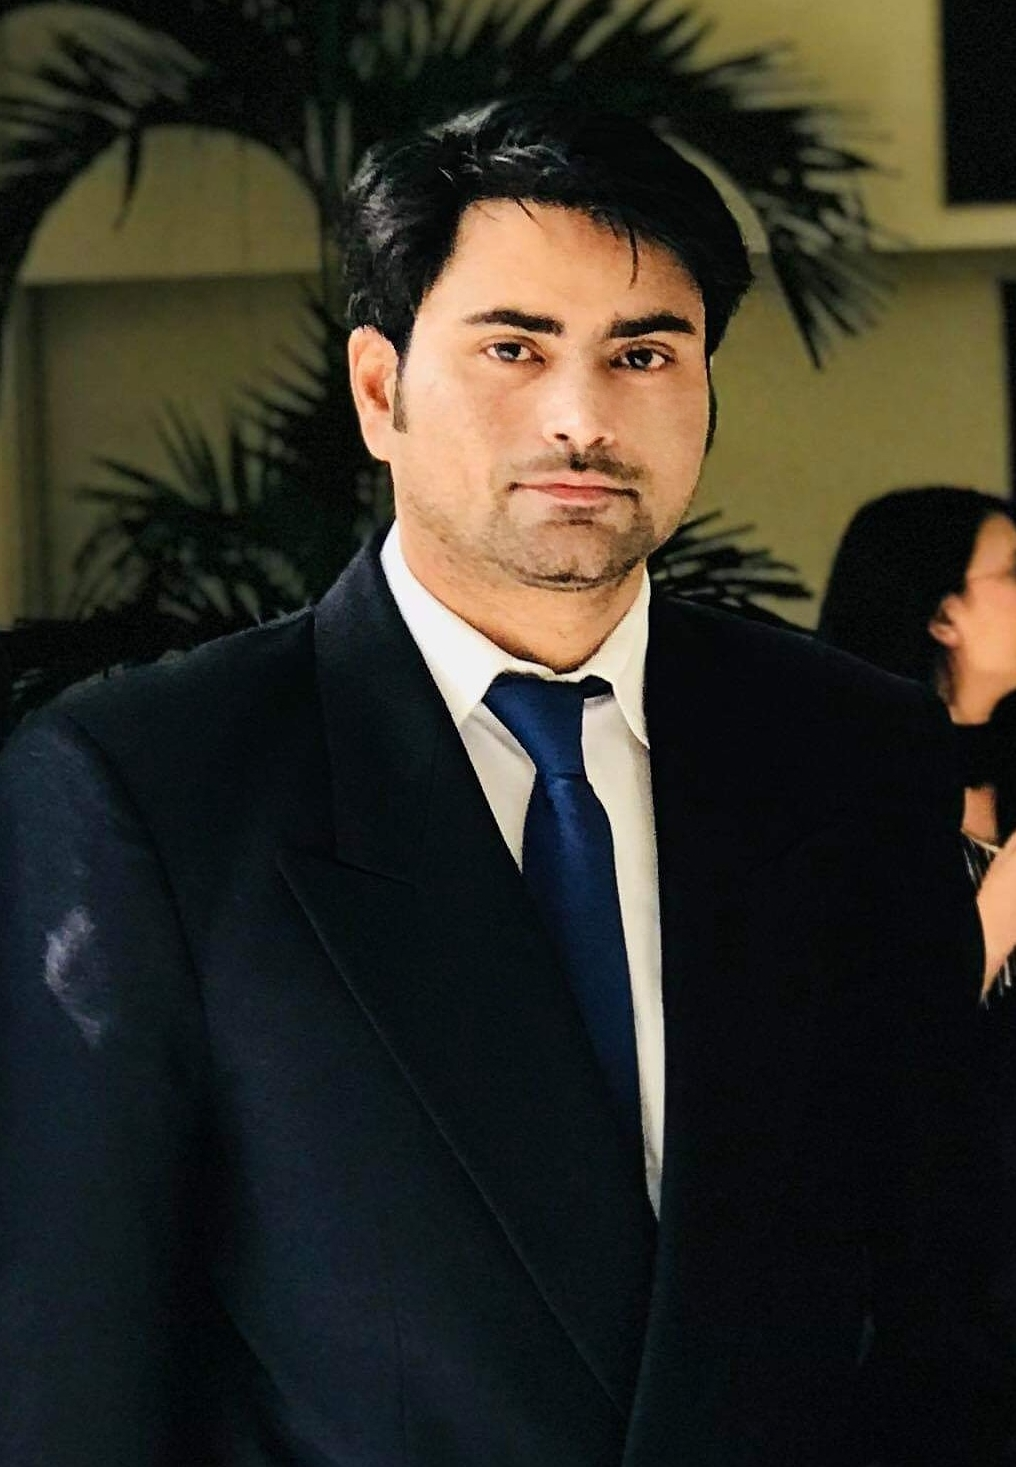 Ali Khan Word, Business Analysis, Business Plans, ERP, Event Planning, Customer Experience, Customer Retention, Customer Strategy, Customer Support, Excel